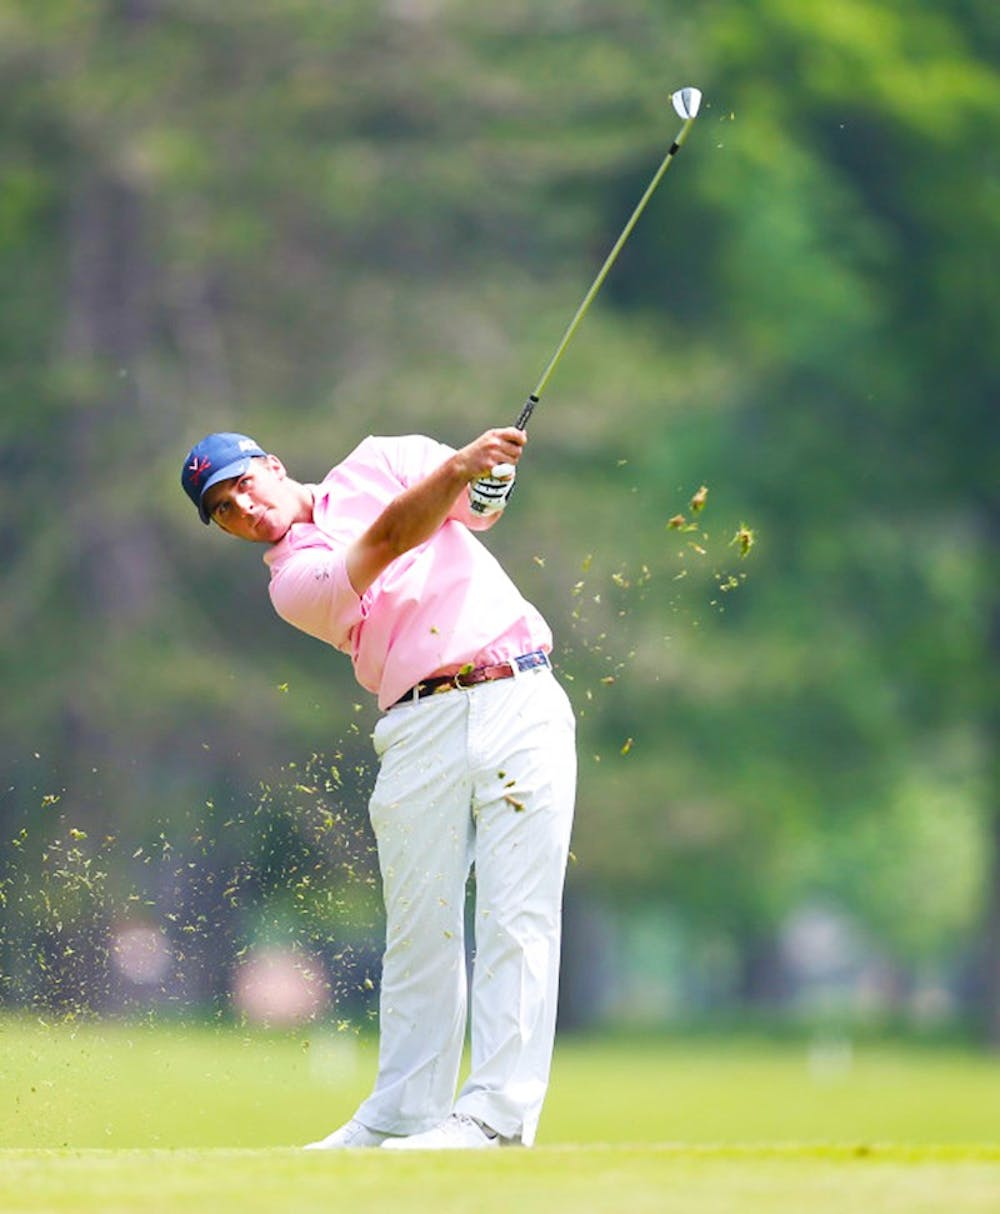 <p>Senior Denny McCarthy won his head-to-headmatch Sunday, when the Cavaliers' fell 3-2 to South Carolina in match play at the DICK'S Sporting Goods Challenge Cup.</p>